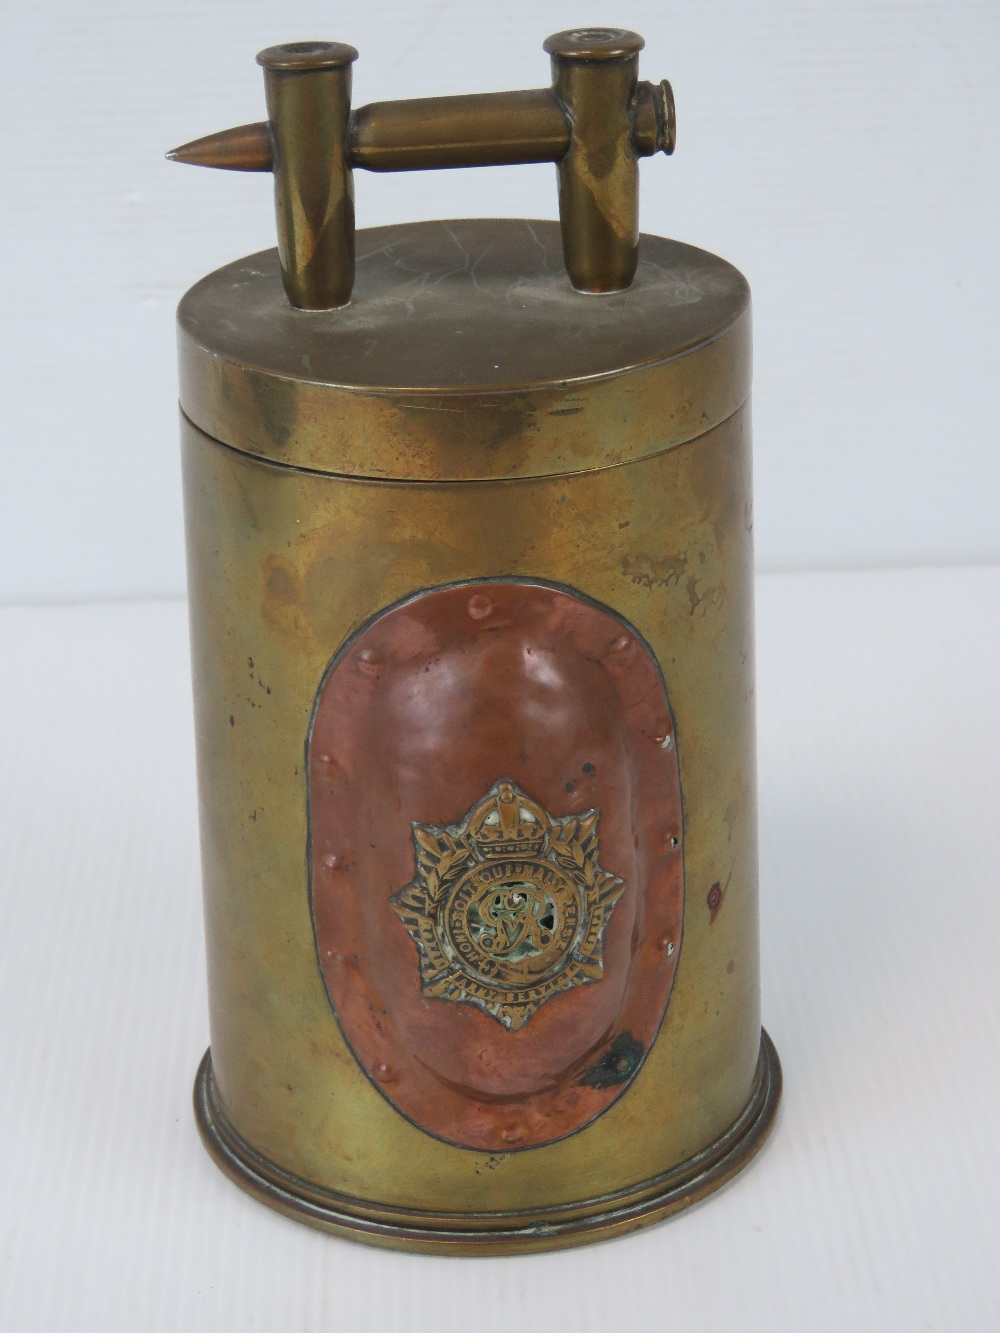 A trench Art shell case lidded pot havin